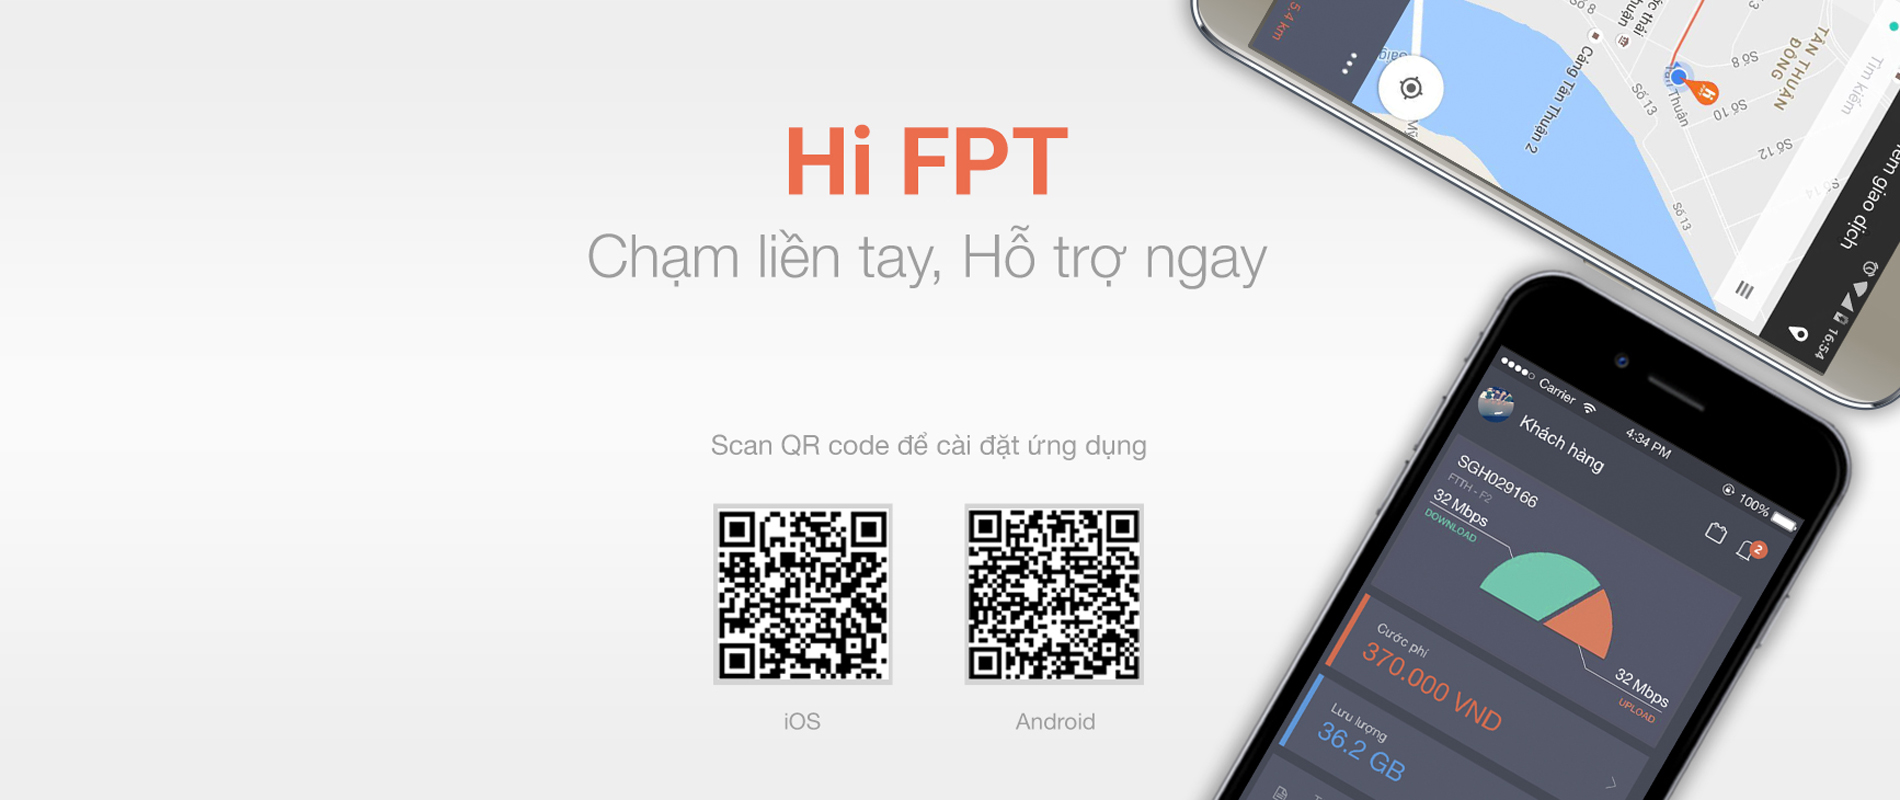 FB-Cover-Hi-FPT